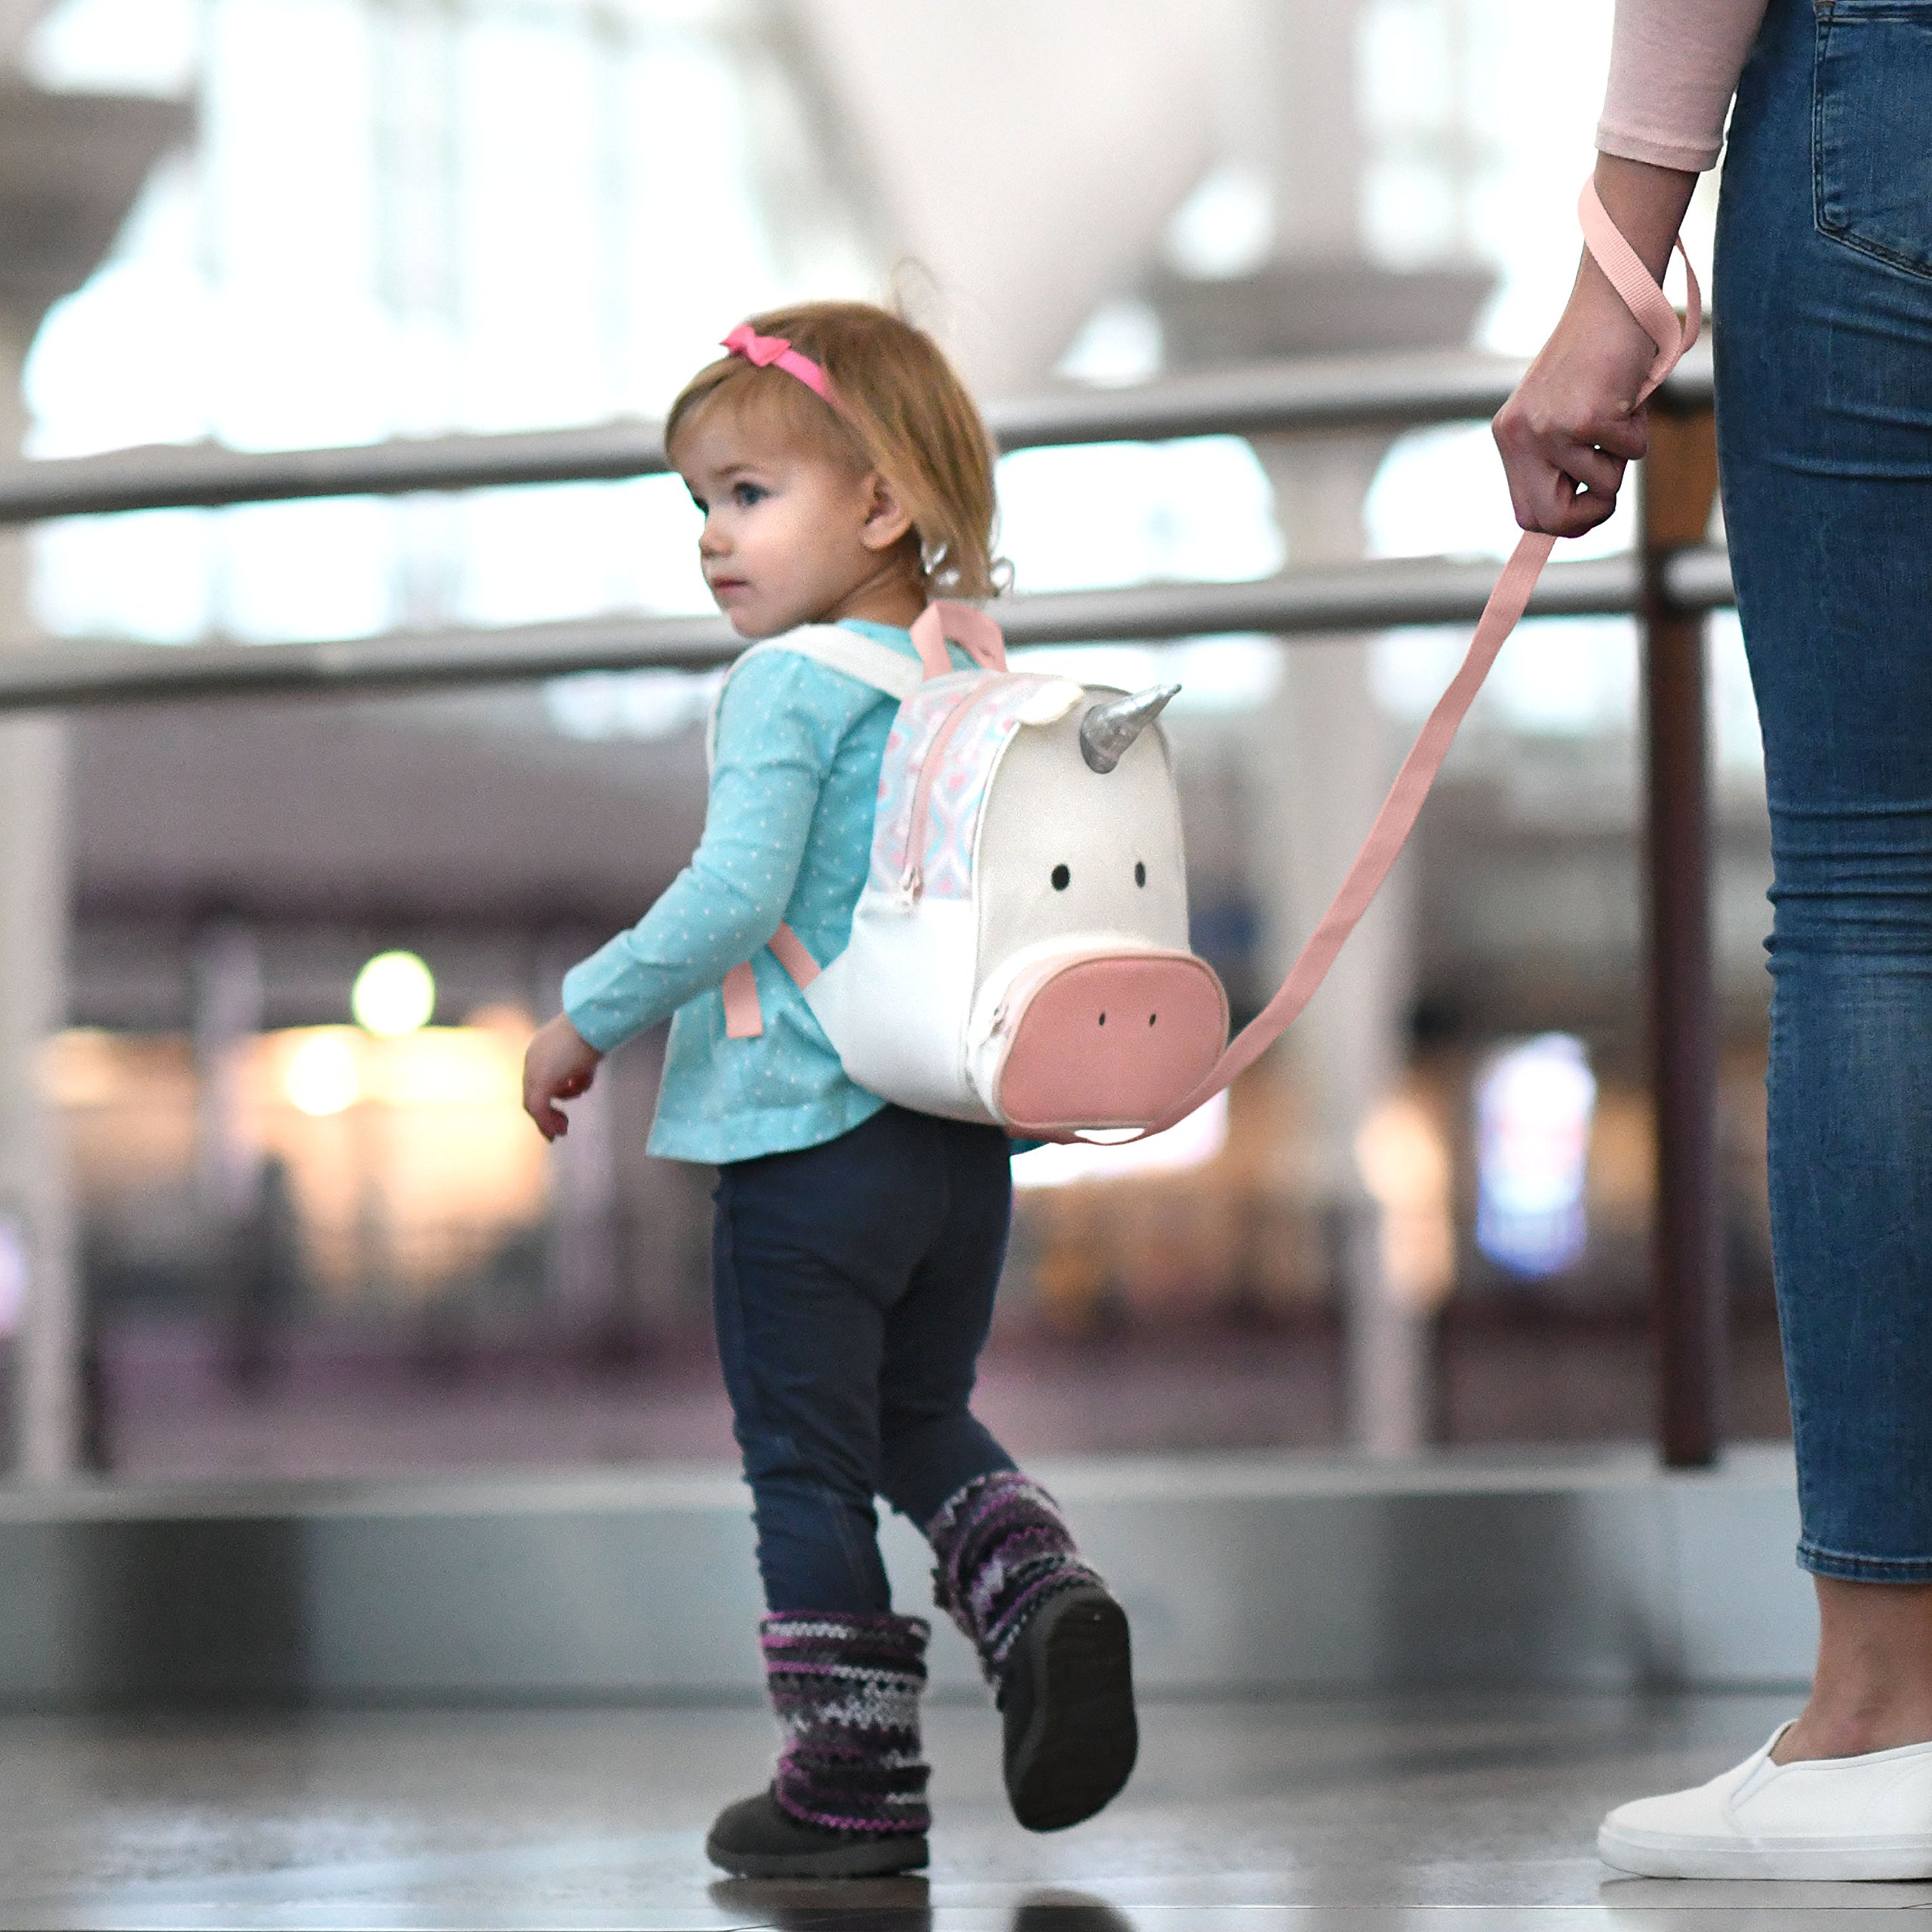 Travel Bug Toddler Safety Unicorn Backpack Harness with Removable Tether, Pink/White by Travel Bug (Image #3)